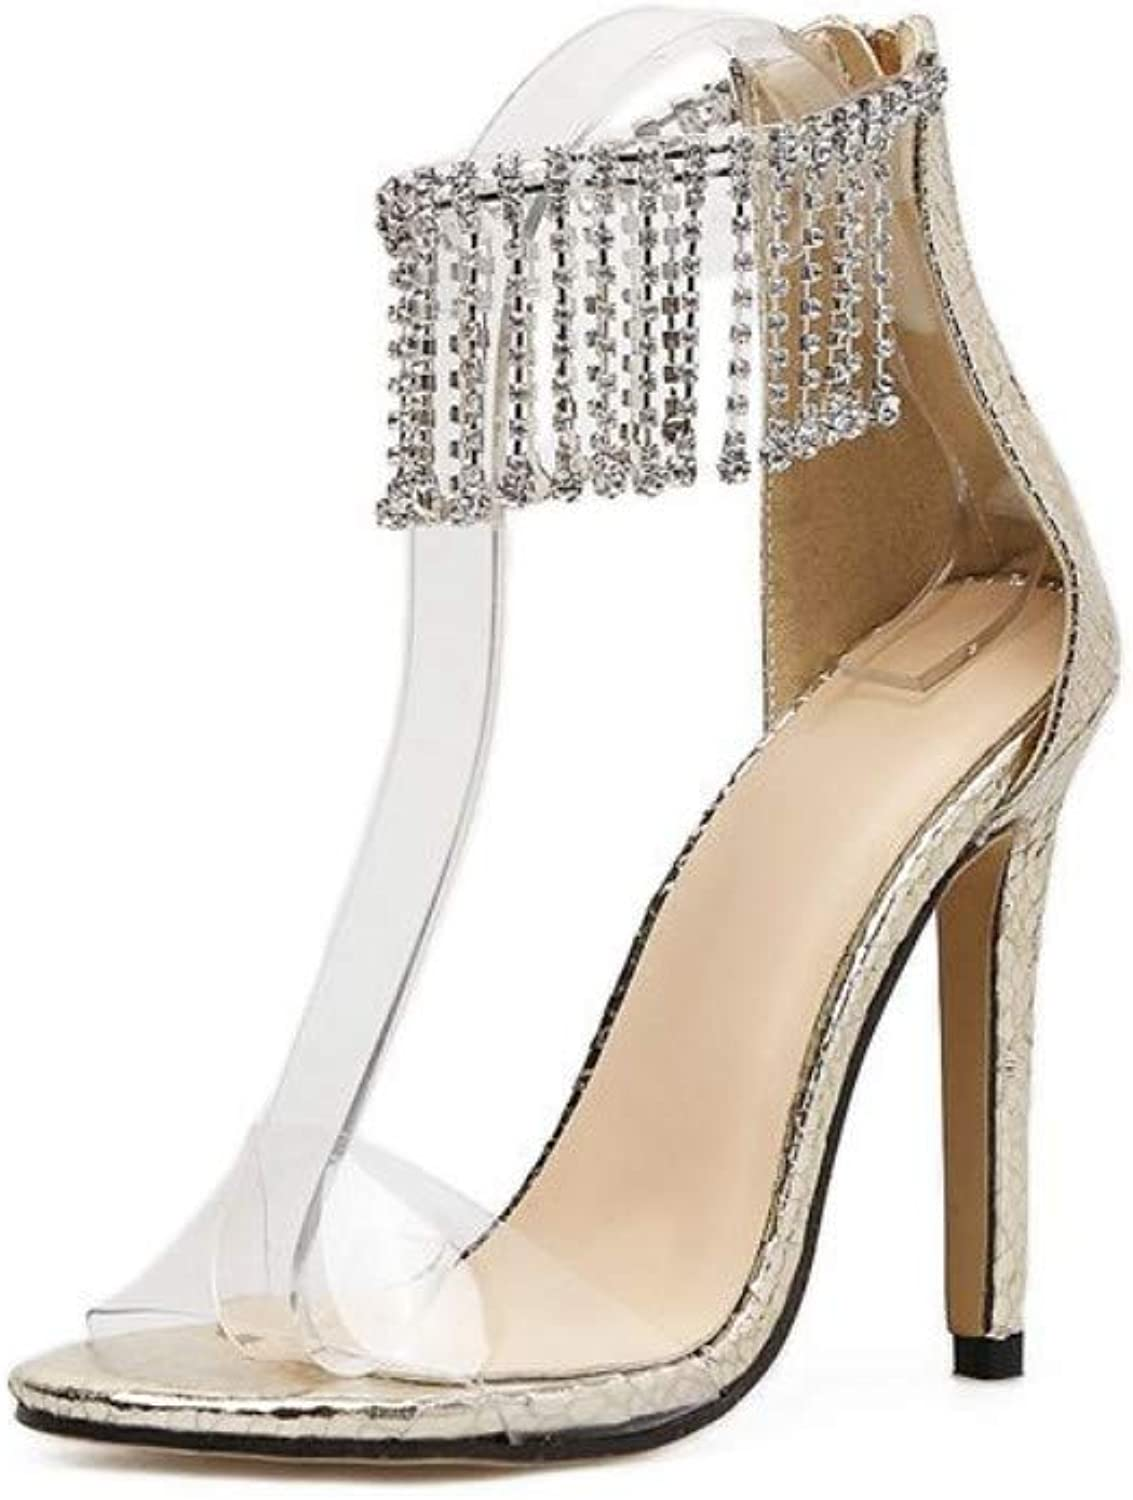 JQfashion Ladies'High-Heeled Sandals Transparent Tassels Roman High-Heeled shoes with Diamond Pointed Thin Heels